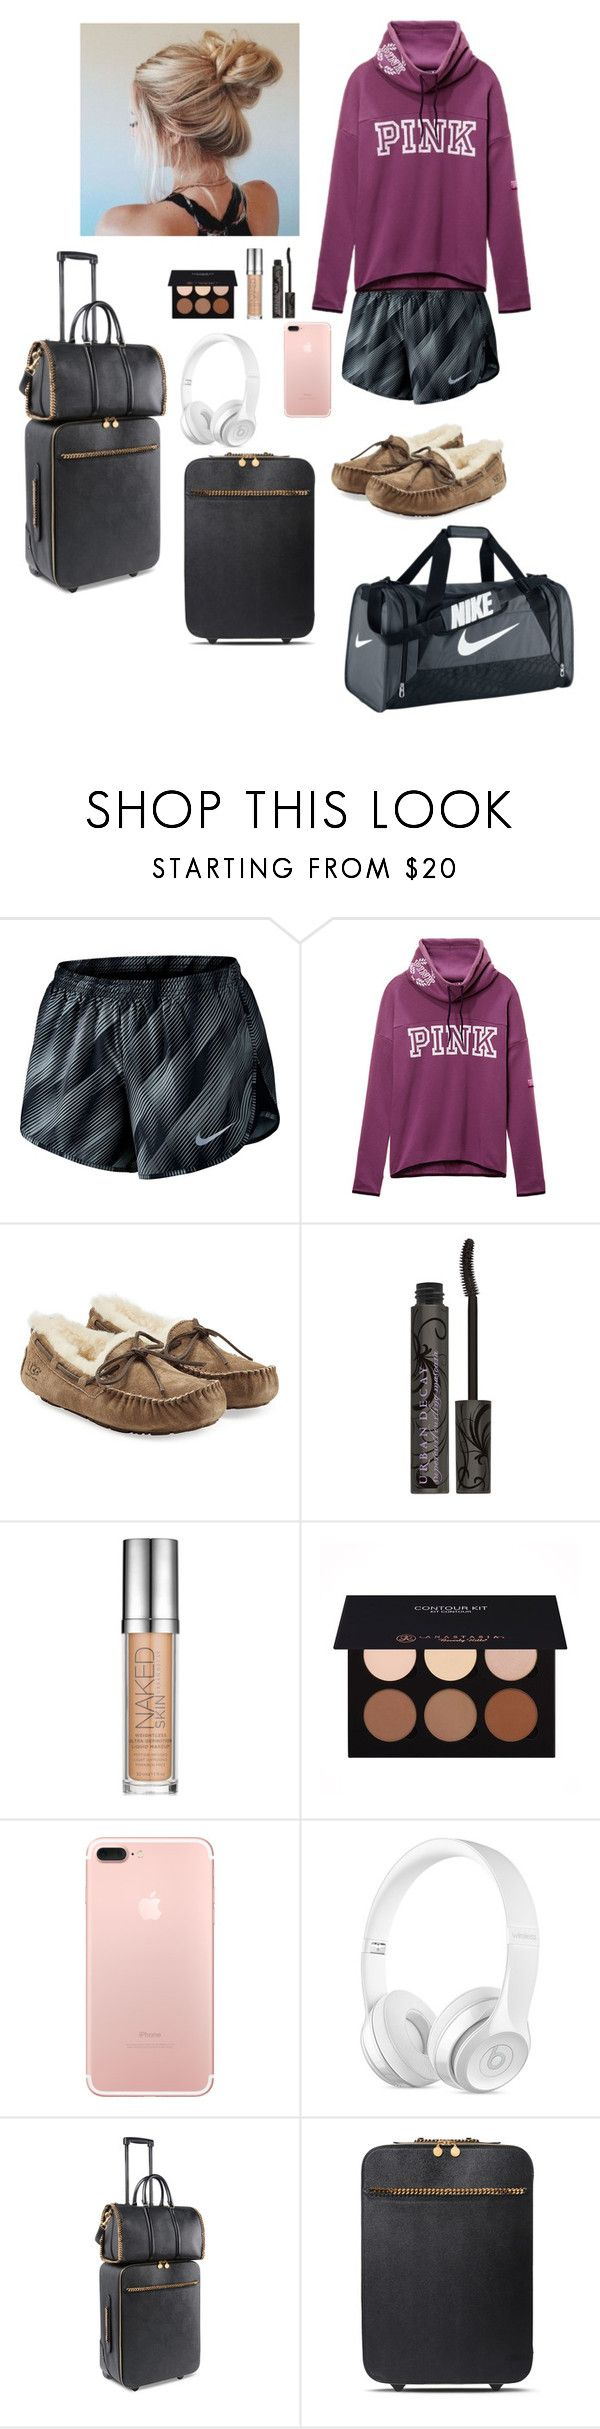 """""""Late night flight to Australia Sunday May 28 summer 6"""" by soccerstar913 ❤ liked on Polyvore featuring NIKE, Victoria's Secret, UGG, Urban Decay, Anastasia Beverly Hills and STELLA McCARTNEY"""